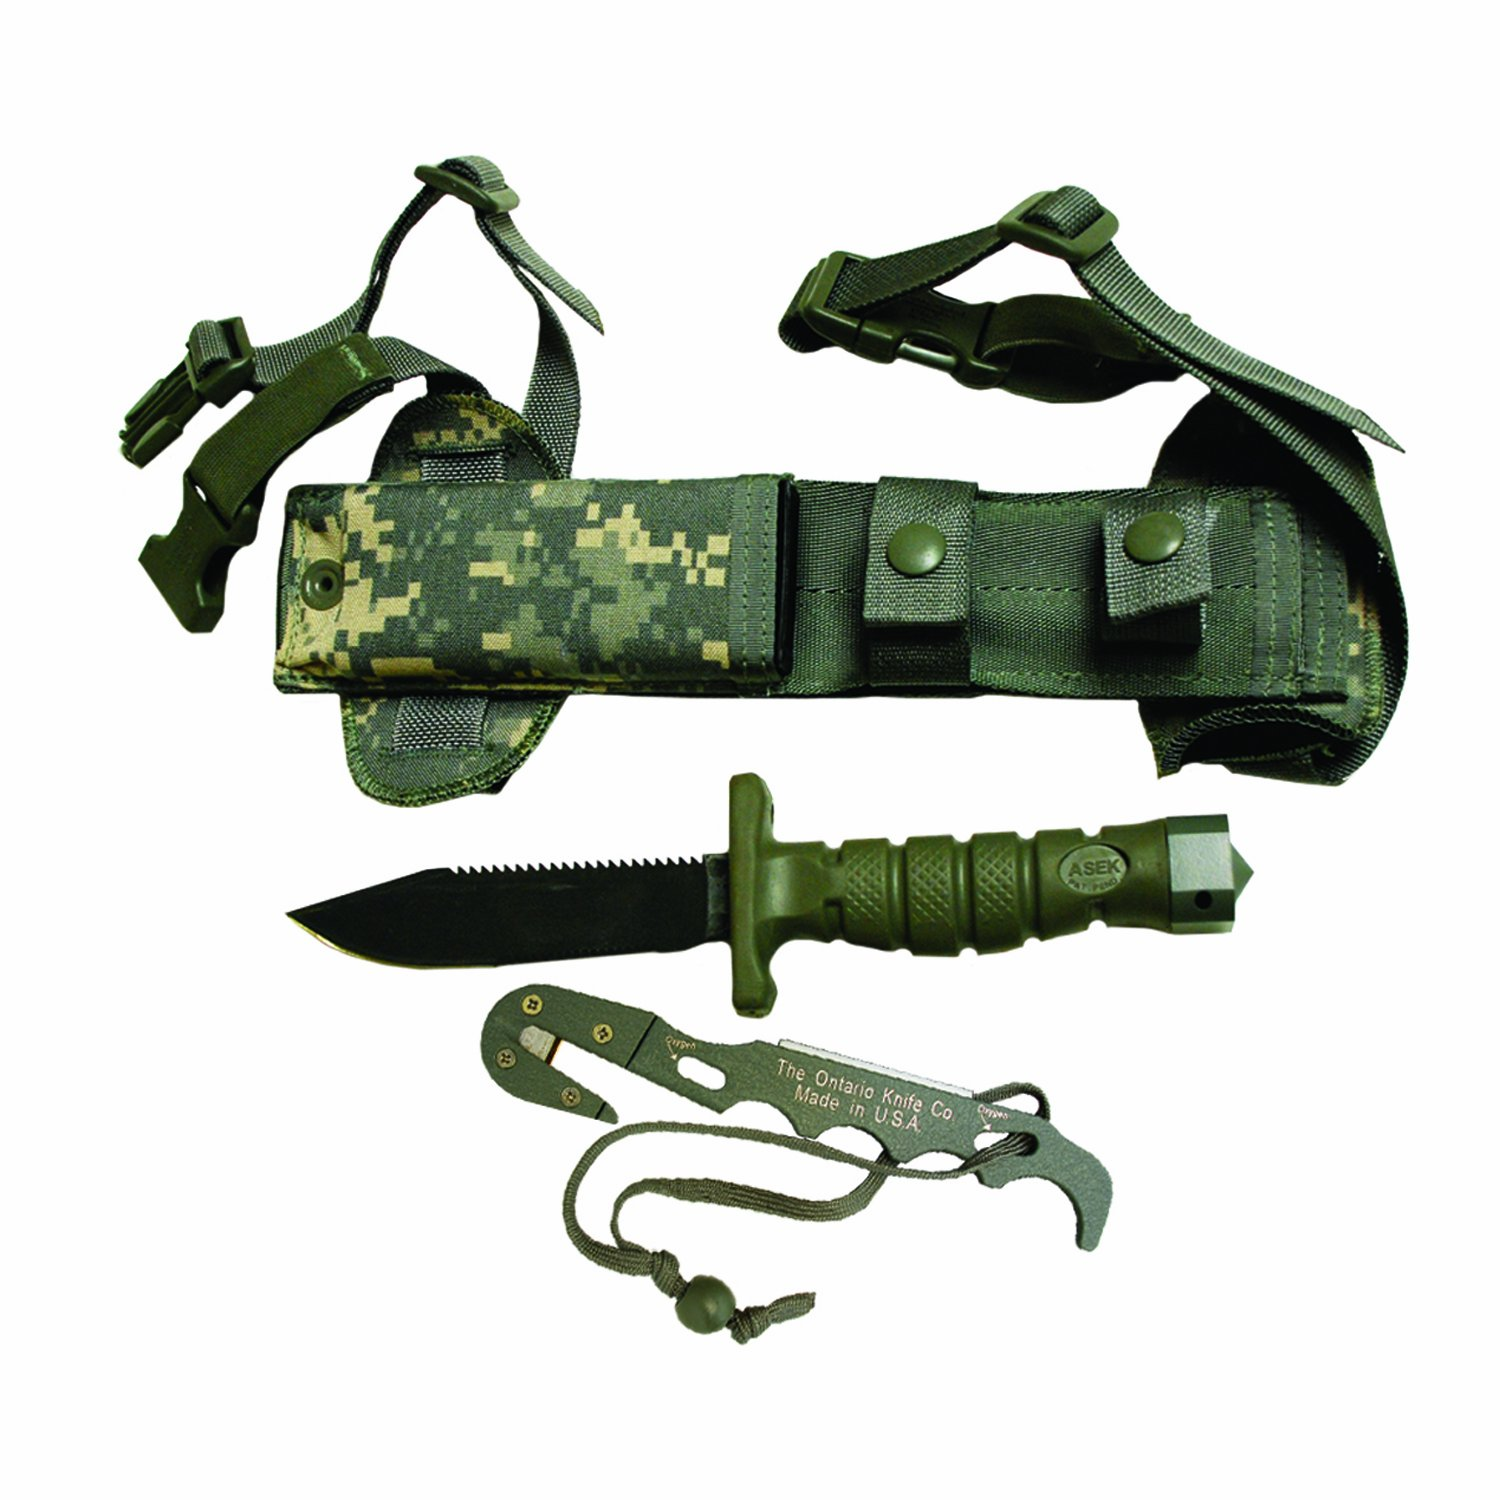 What knife do troops, Army Special Forces and SEALs use? – The